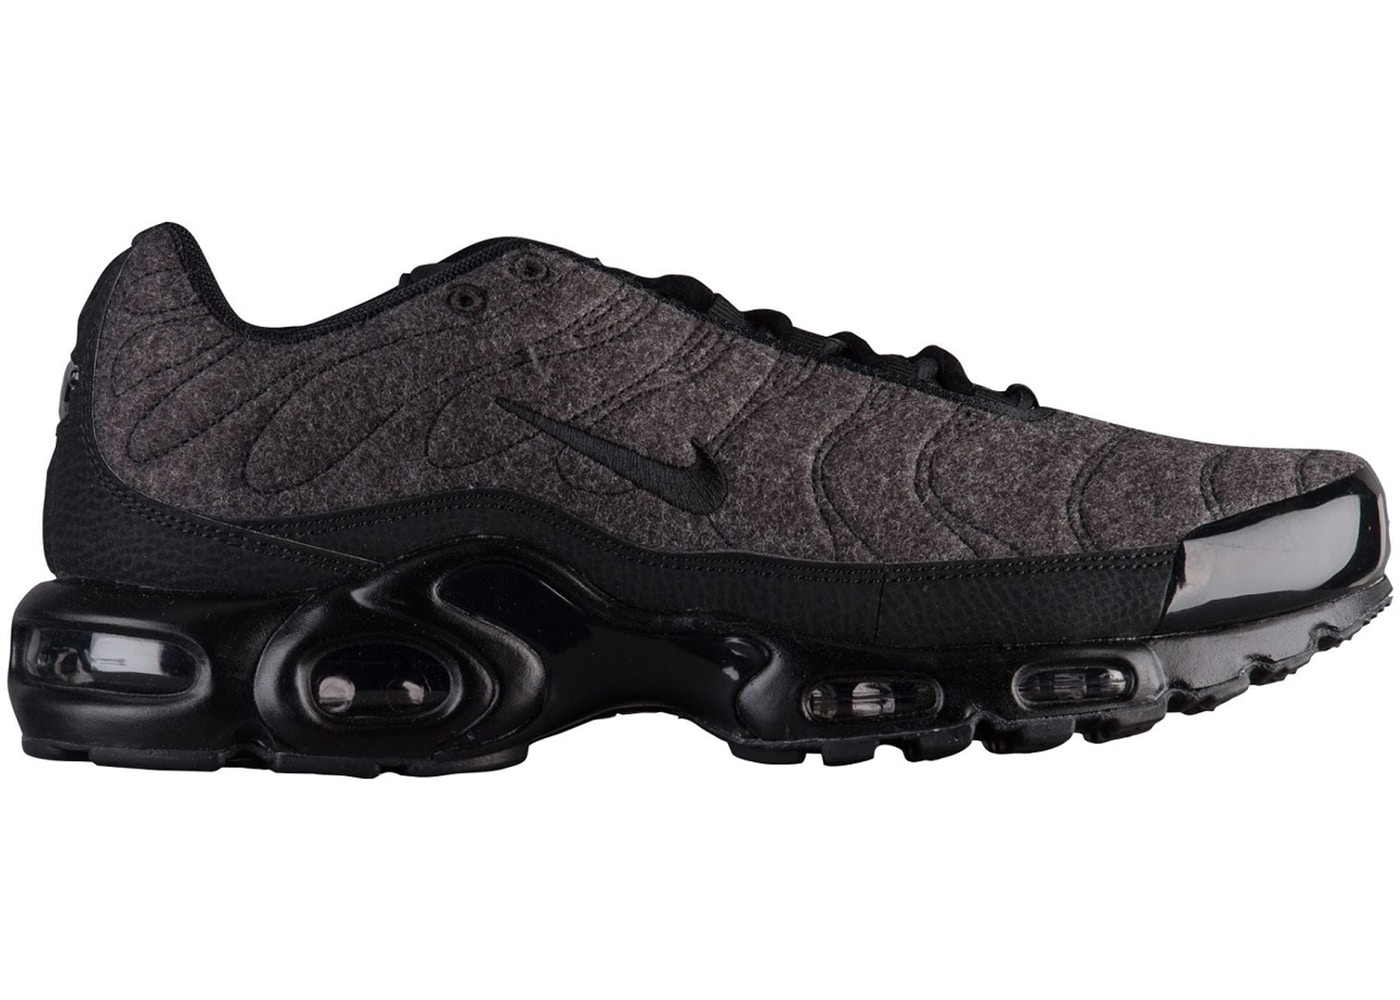 brand new feb16 7e537 Air Max Plus Quilted Wool - 806262-022